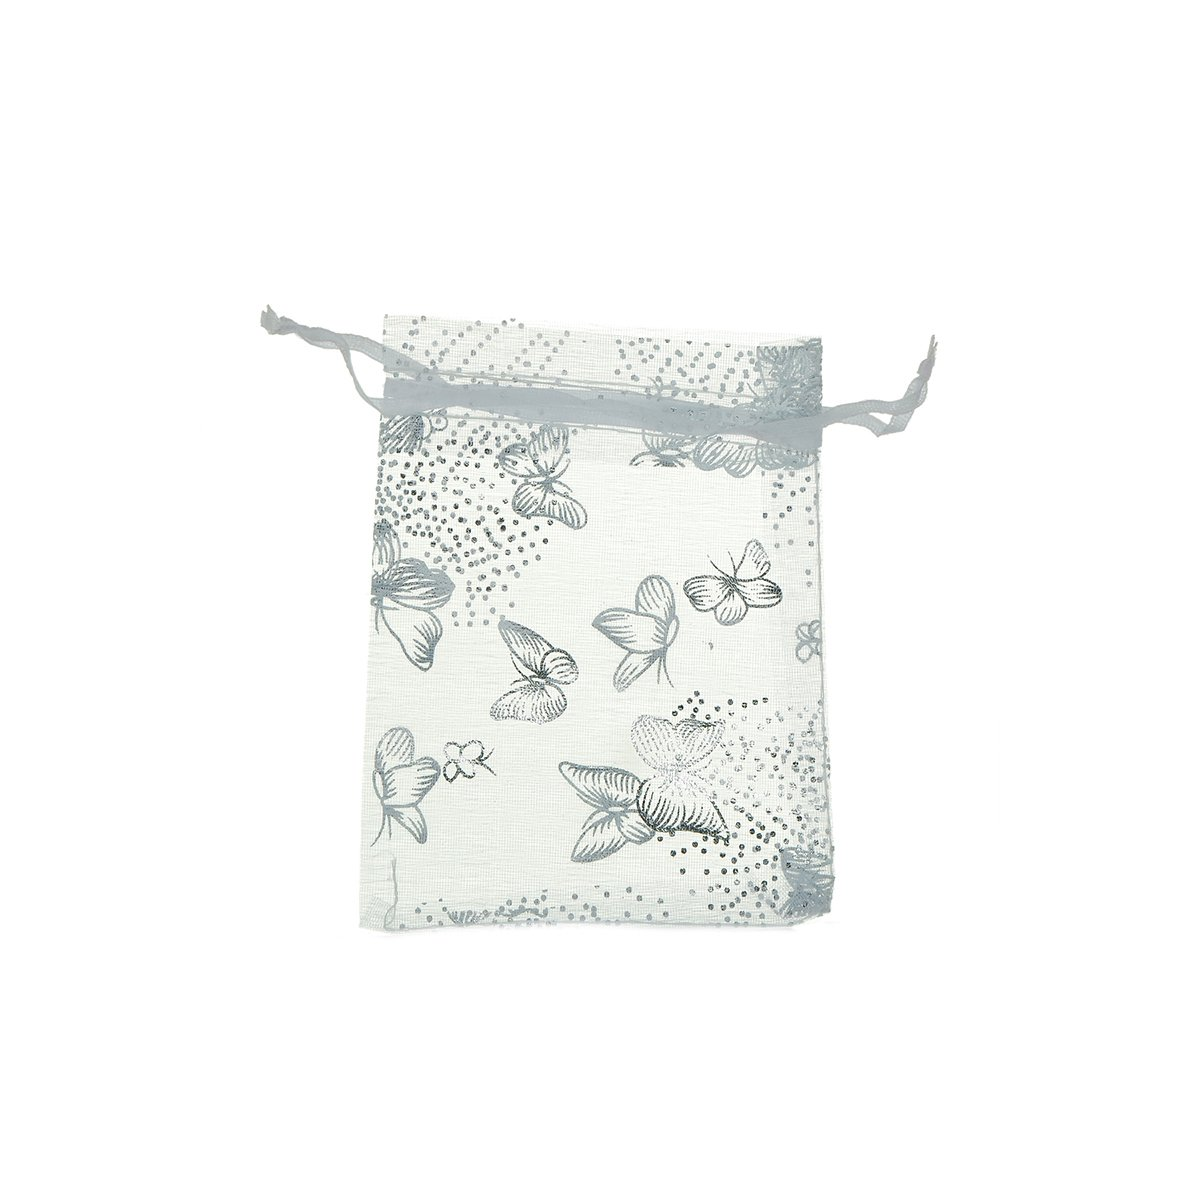 QX 9cm x12cm White Butterfly Organza Jewelry Pouches Wedding Party Christmas Gift Silk Bags 100pcs